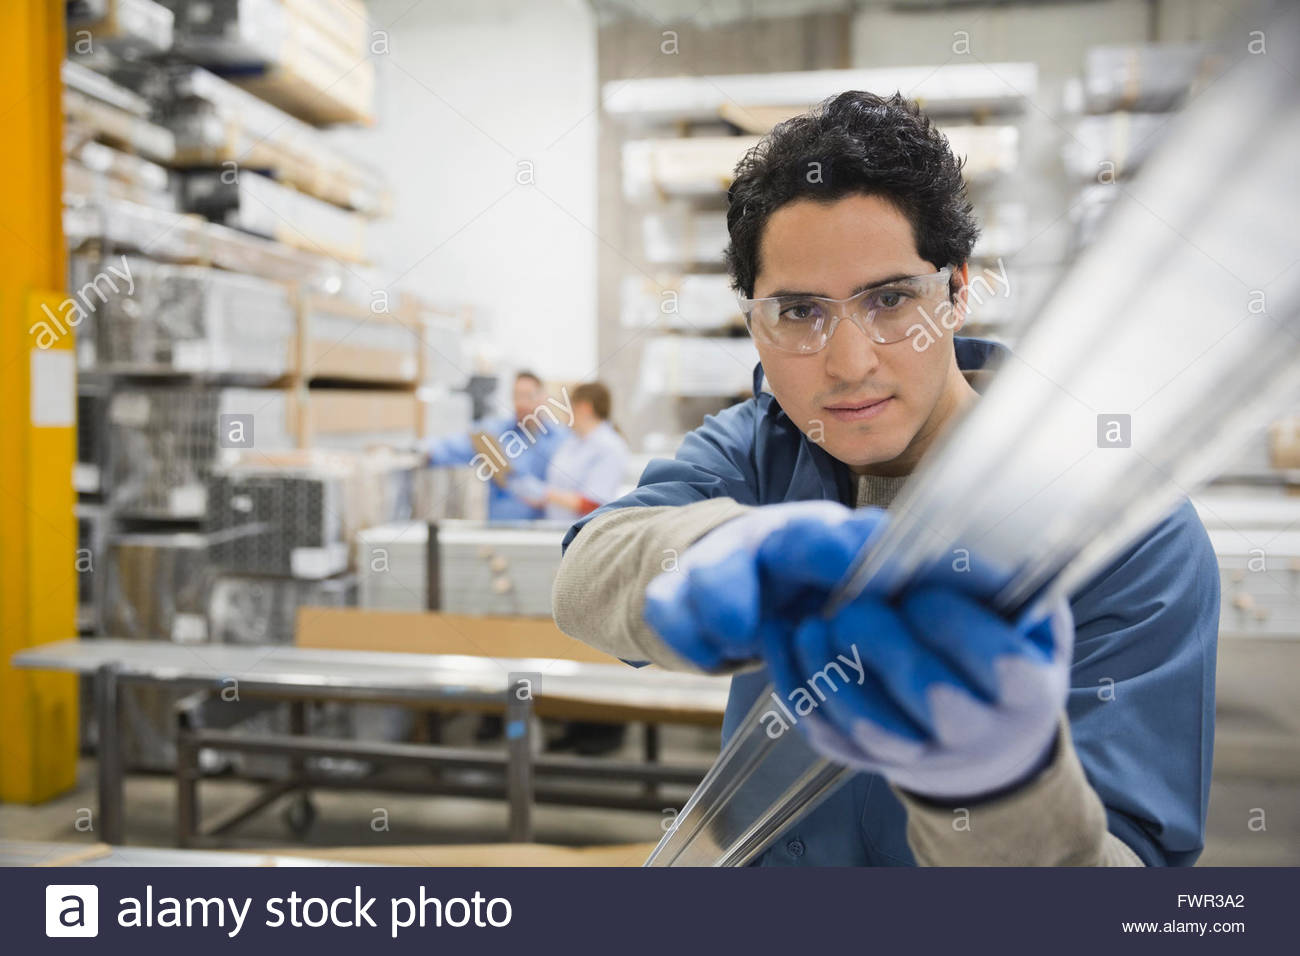 Male worker examining metal in warehouse - Stock Image